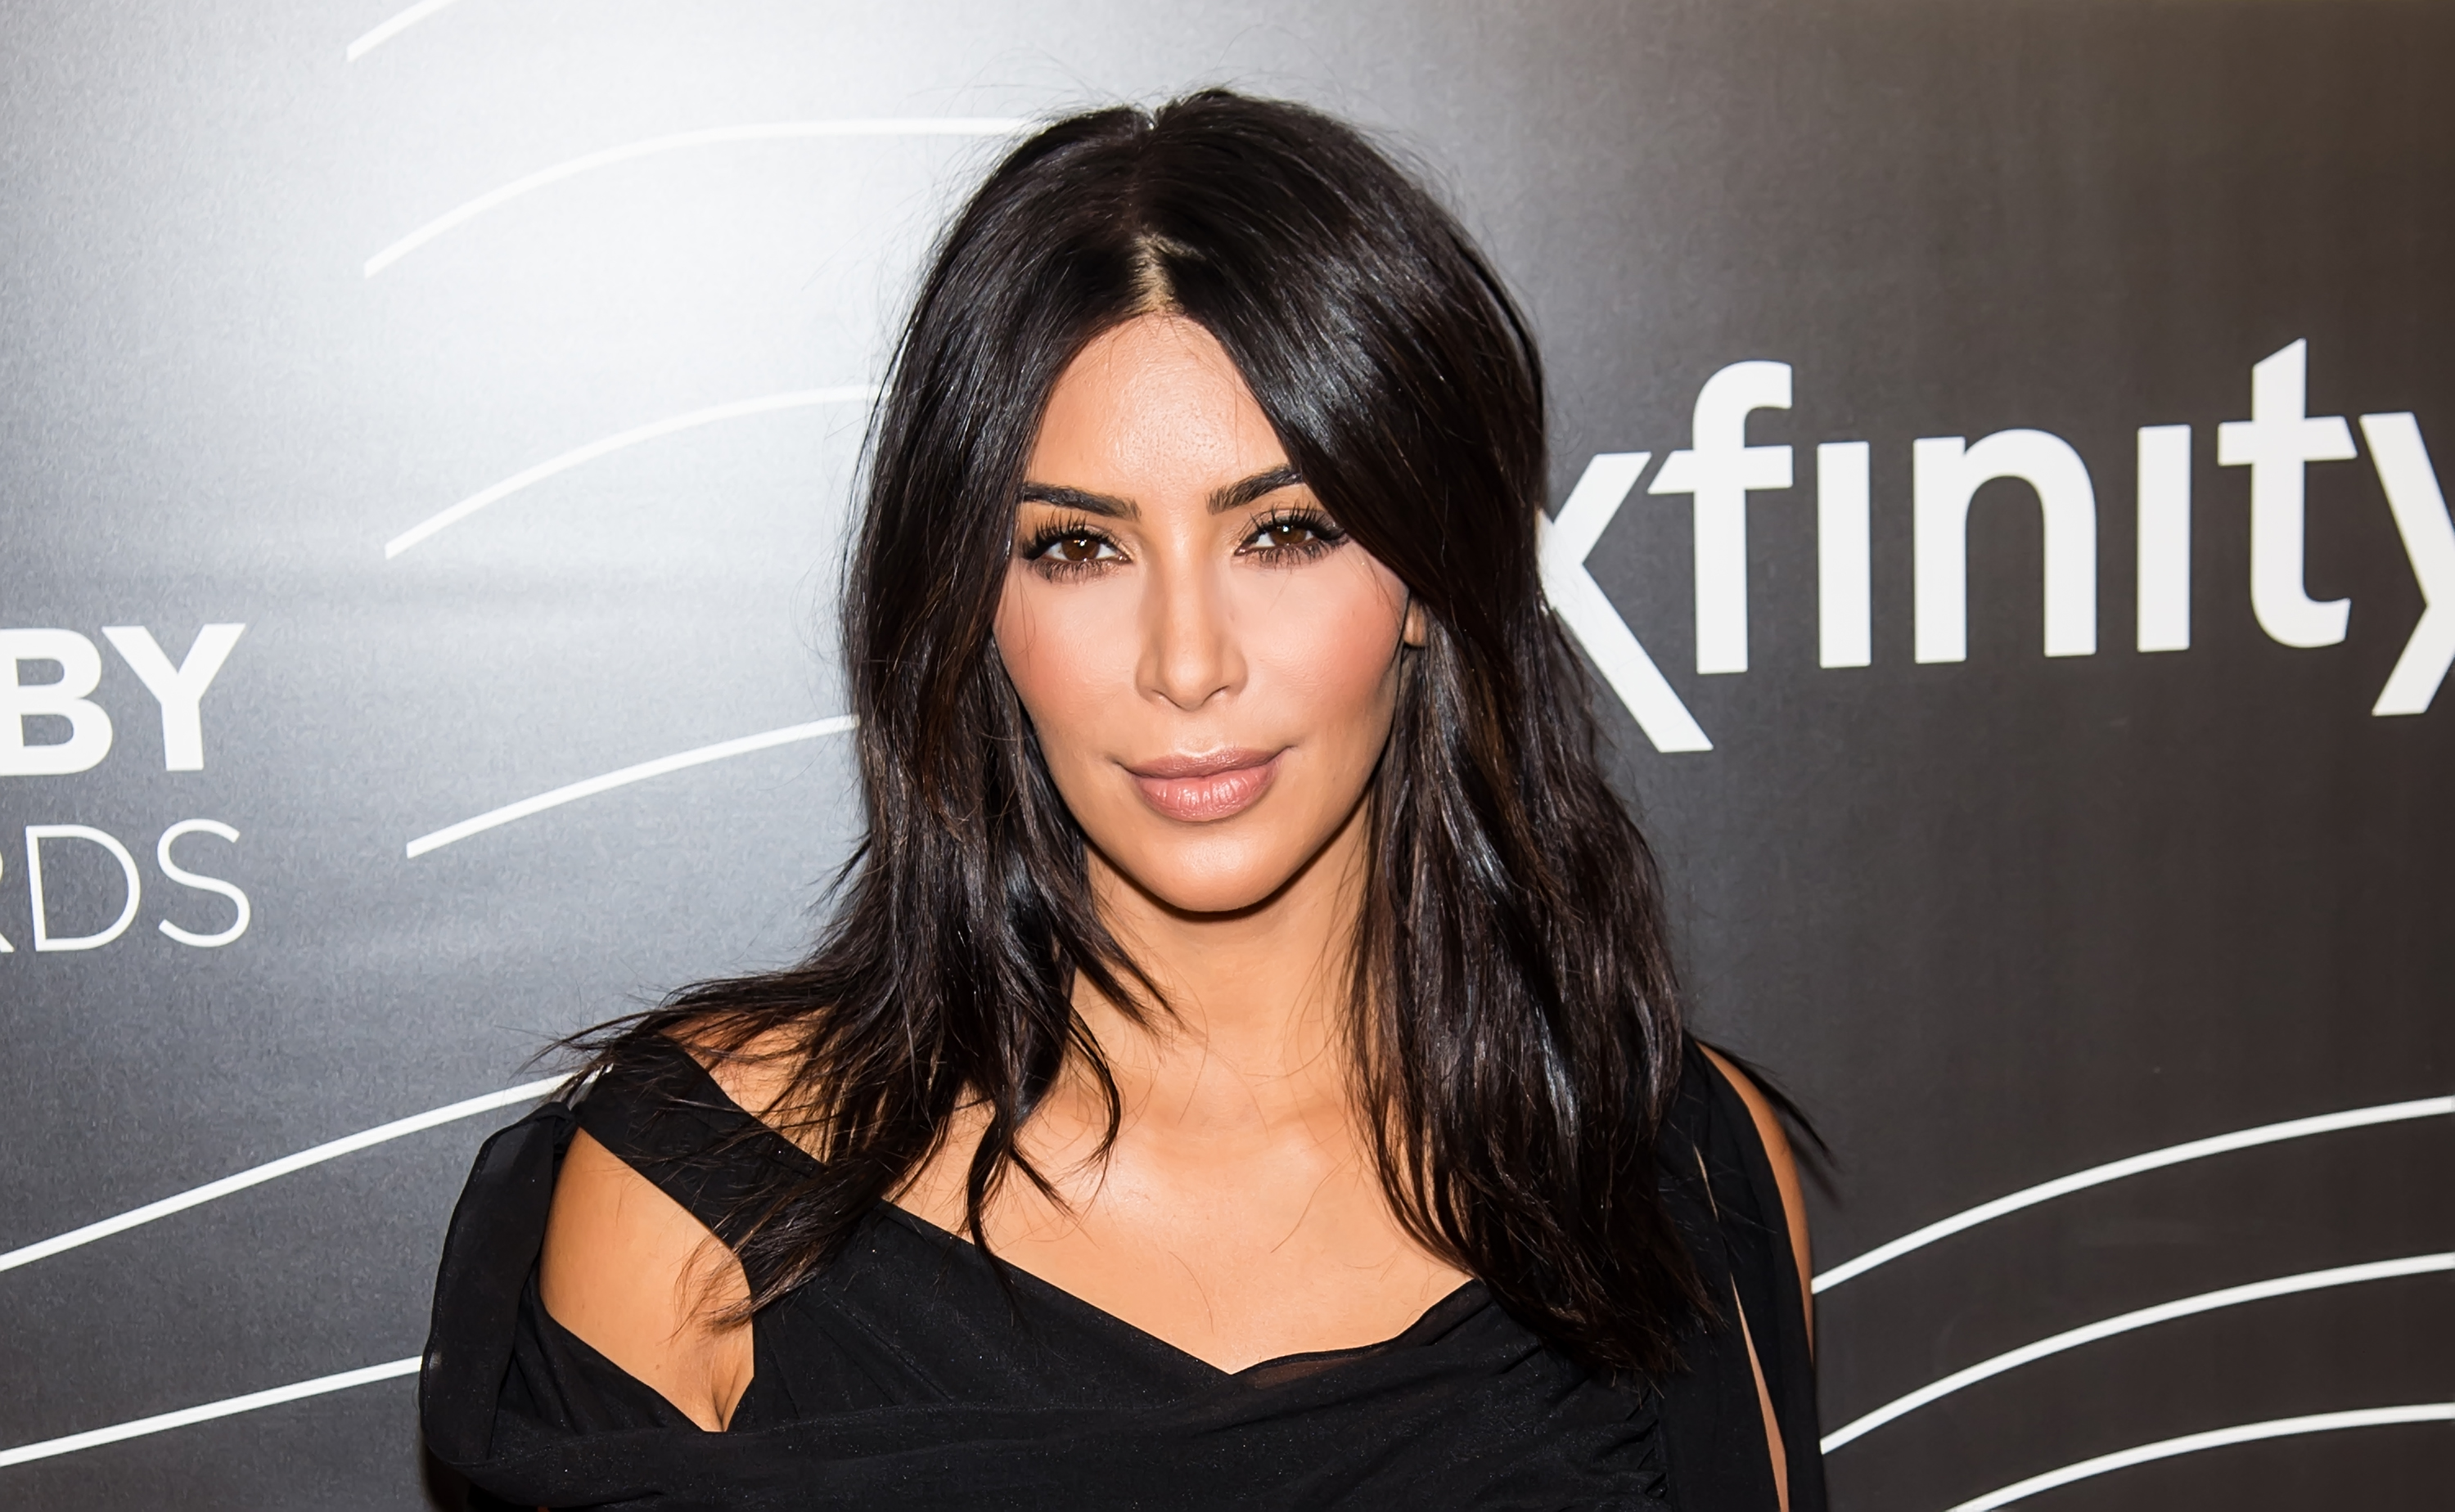 Kim Kardashian says she's 'speechless' and 'angry' in Black Lives Matter post